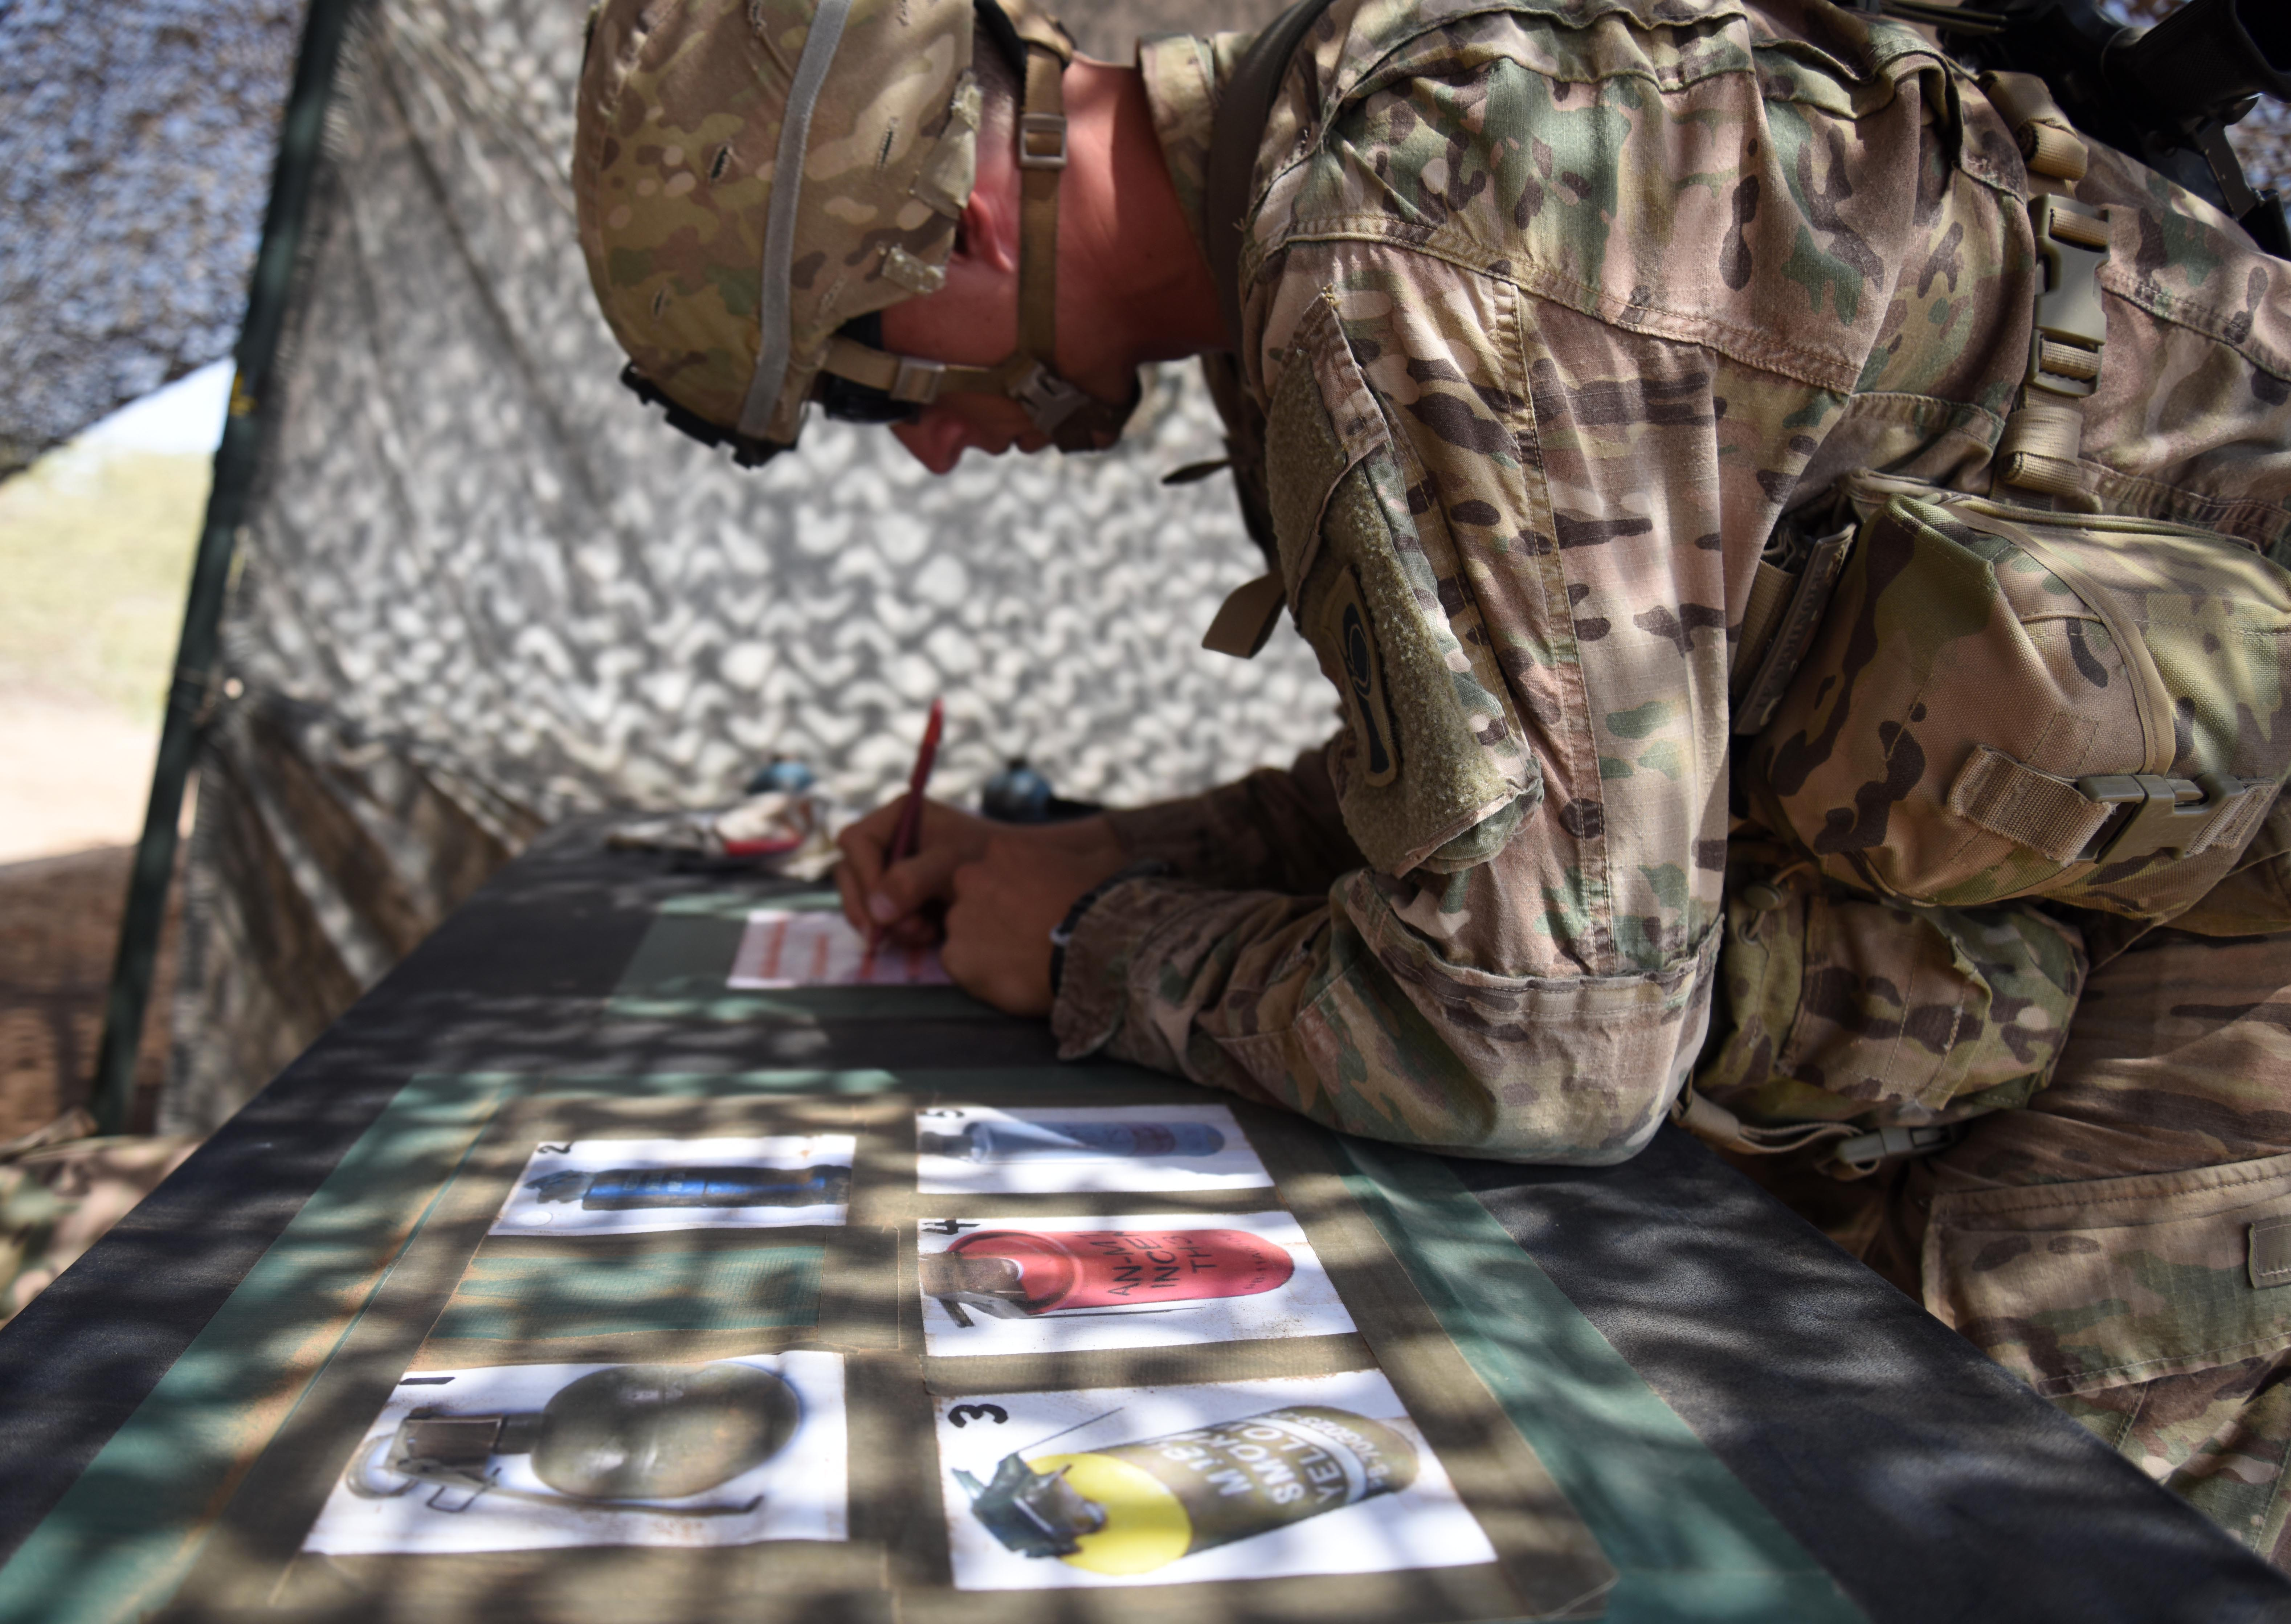 U.S. Army Expert Infantry Badge candidate completes a grenade classification test March 31, 2016, during the patrolling portion of the EIB course at Camp Lemonnier, Djibouti. After completing the grenade test, candidates had to complete two different grenade application tests where they threw them 35 feet and into a simulated enemy bunker. (U.S. Air Force photo by Staff Sgt. Kate Thornton)